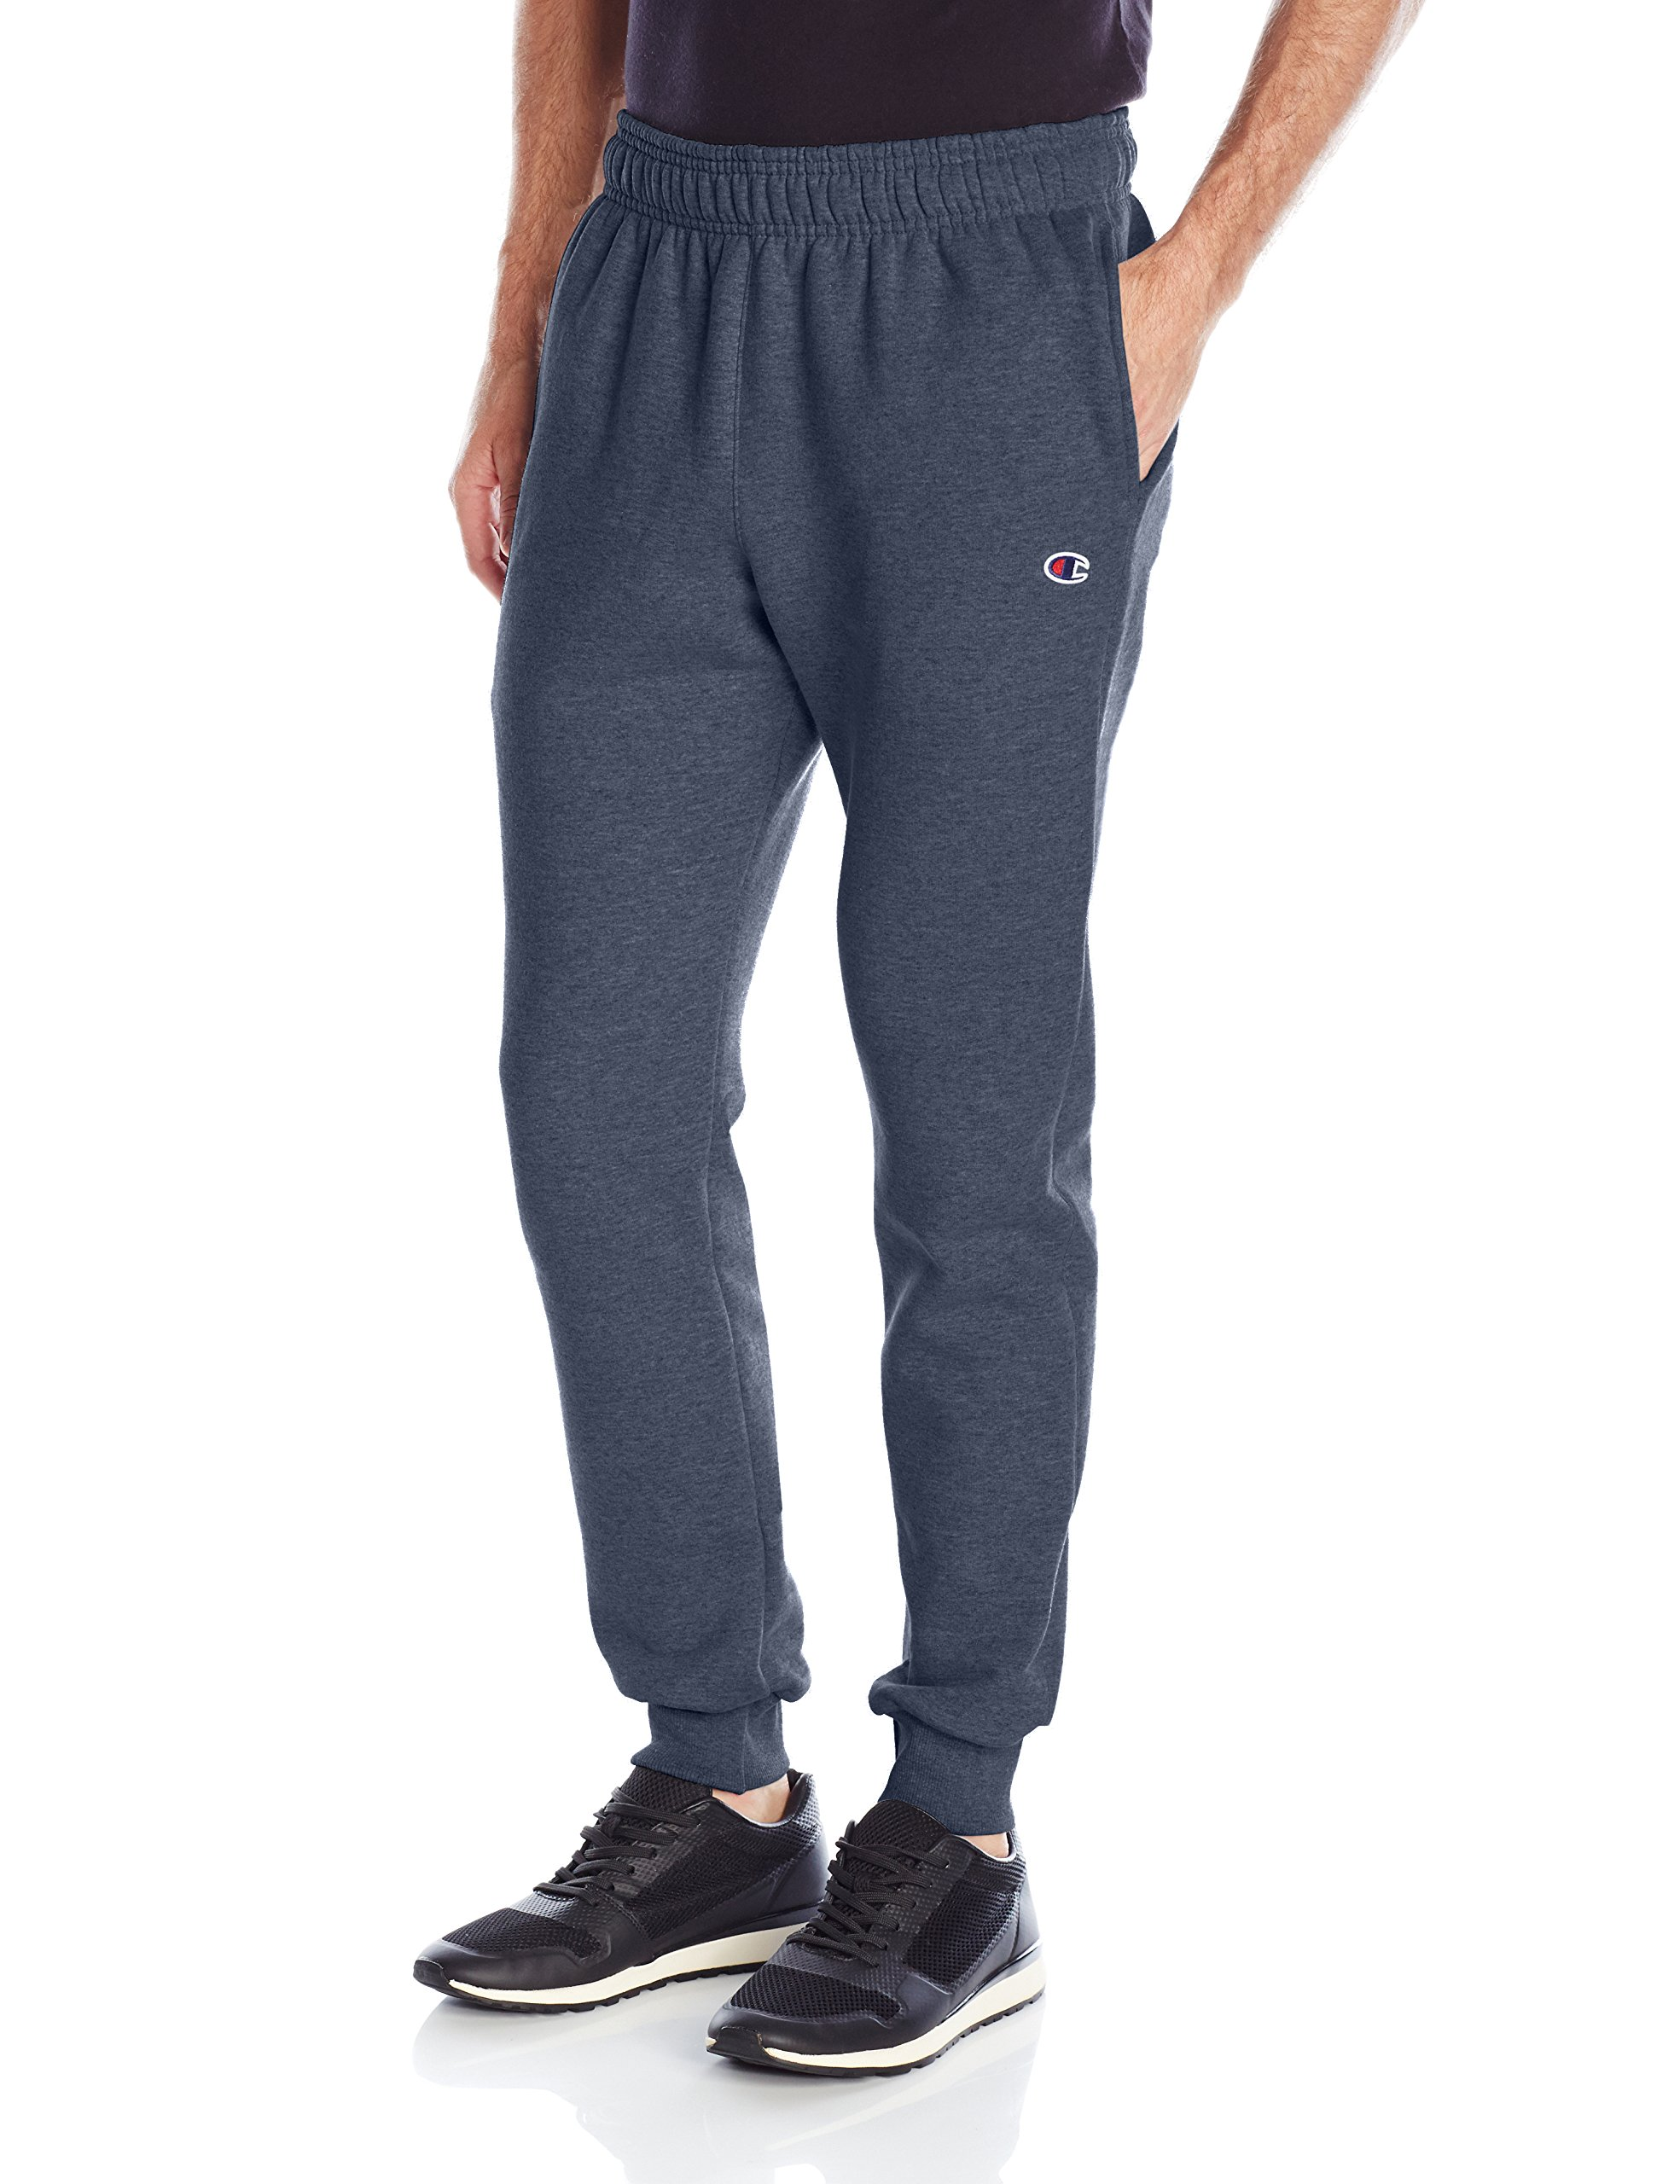 Champion Men's Powerblend Retro Fleece Jogger Pant, Navy Heather, X-Large by Champion